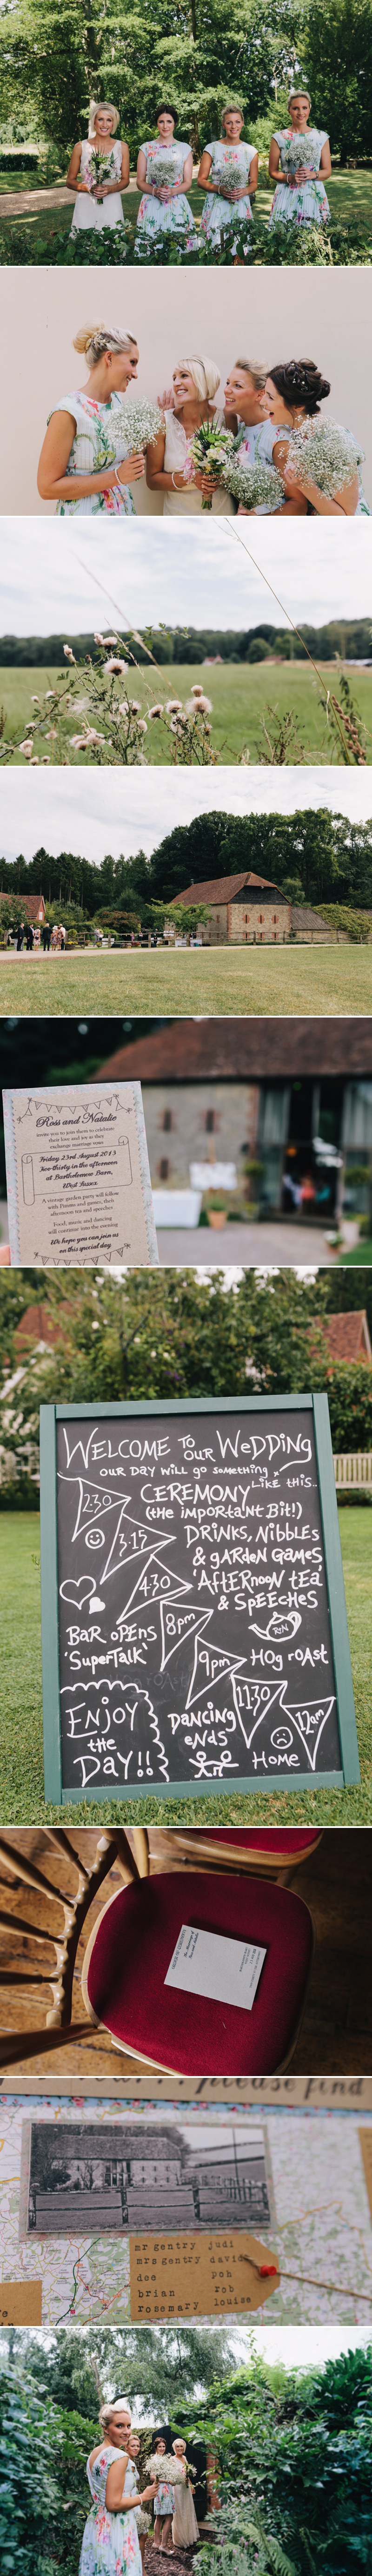 rustic-barn-wedding-venue-bartholomew-barn-west-sussex-coco-wedding-venues-brighton-photo-002